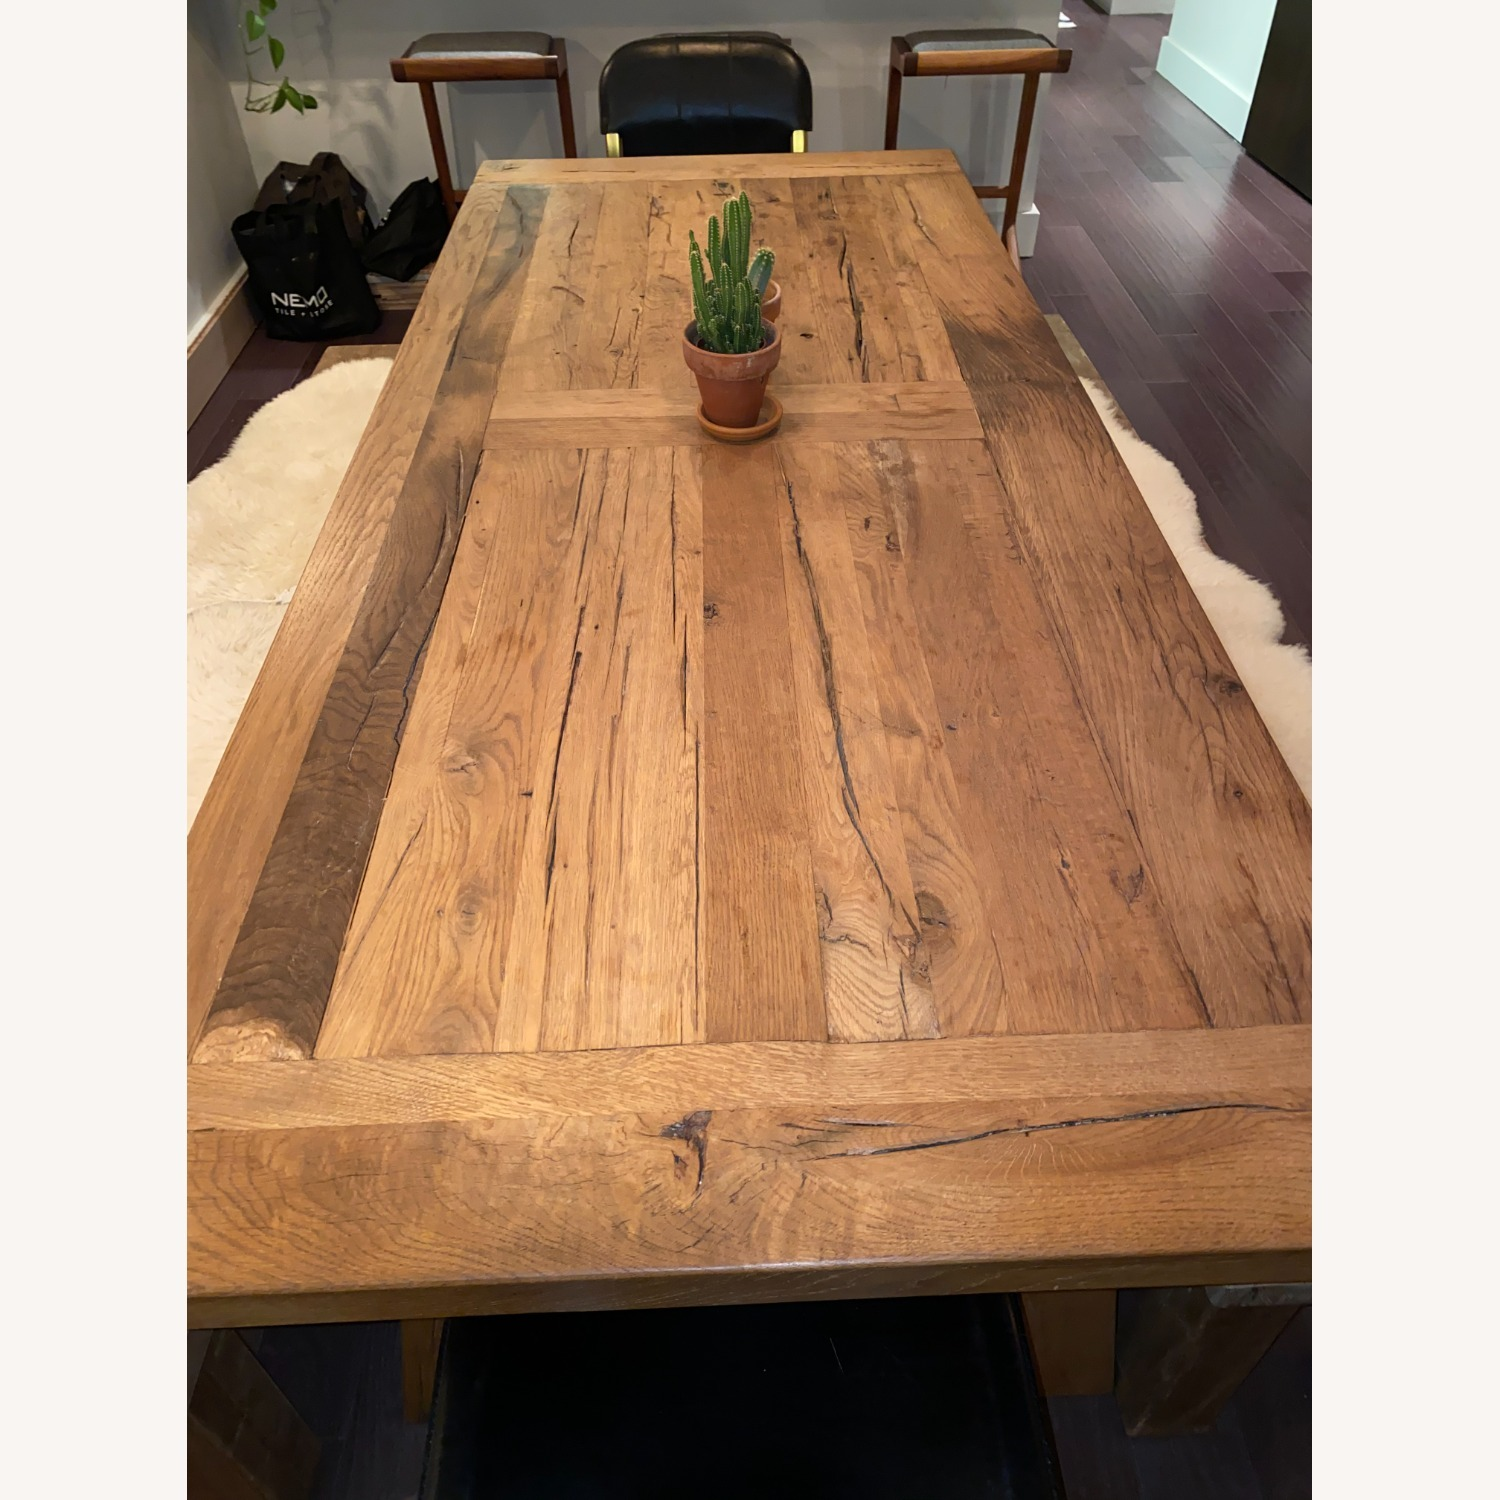 Restoration Hardware Russian Oak Table and Benches - image-3